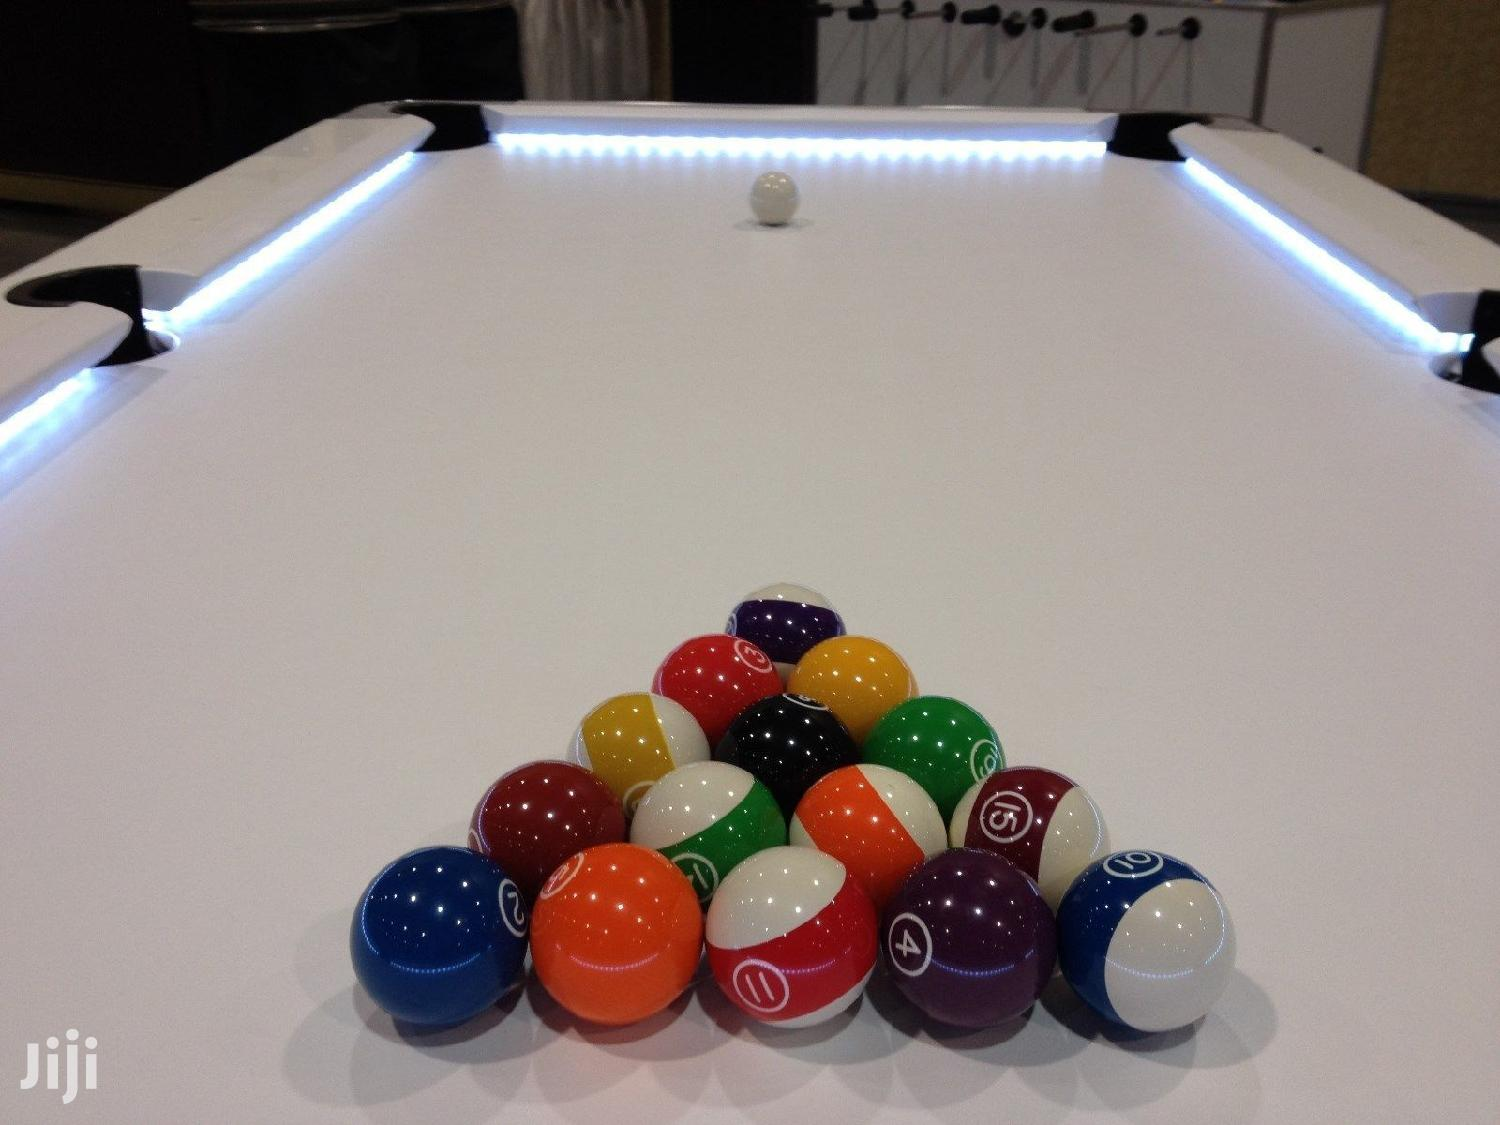 New Coin Operated and Electronic Pool Tables